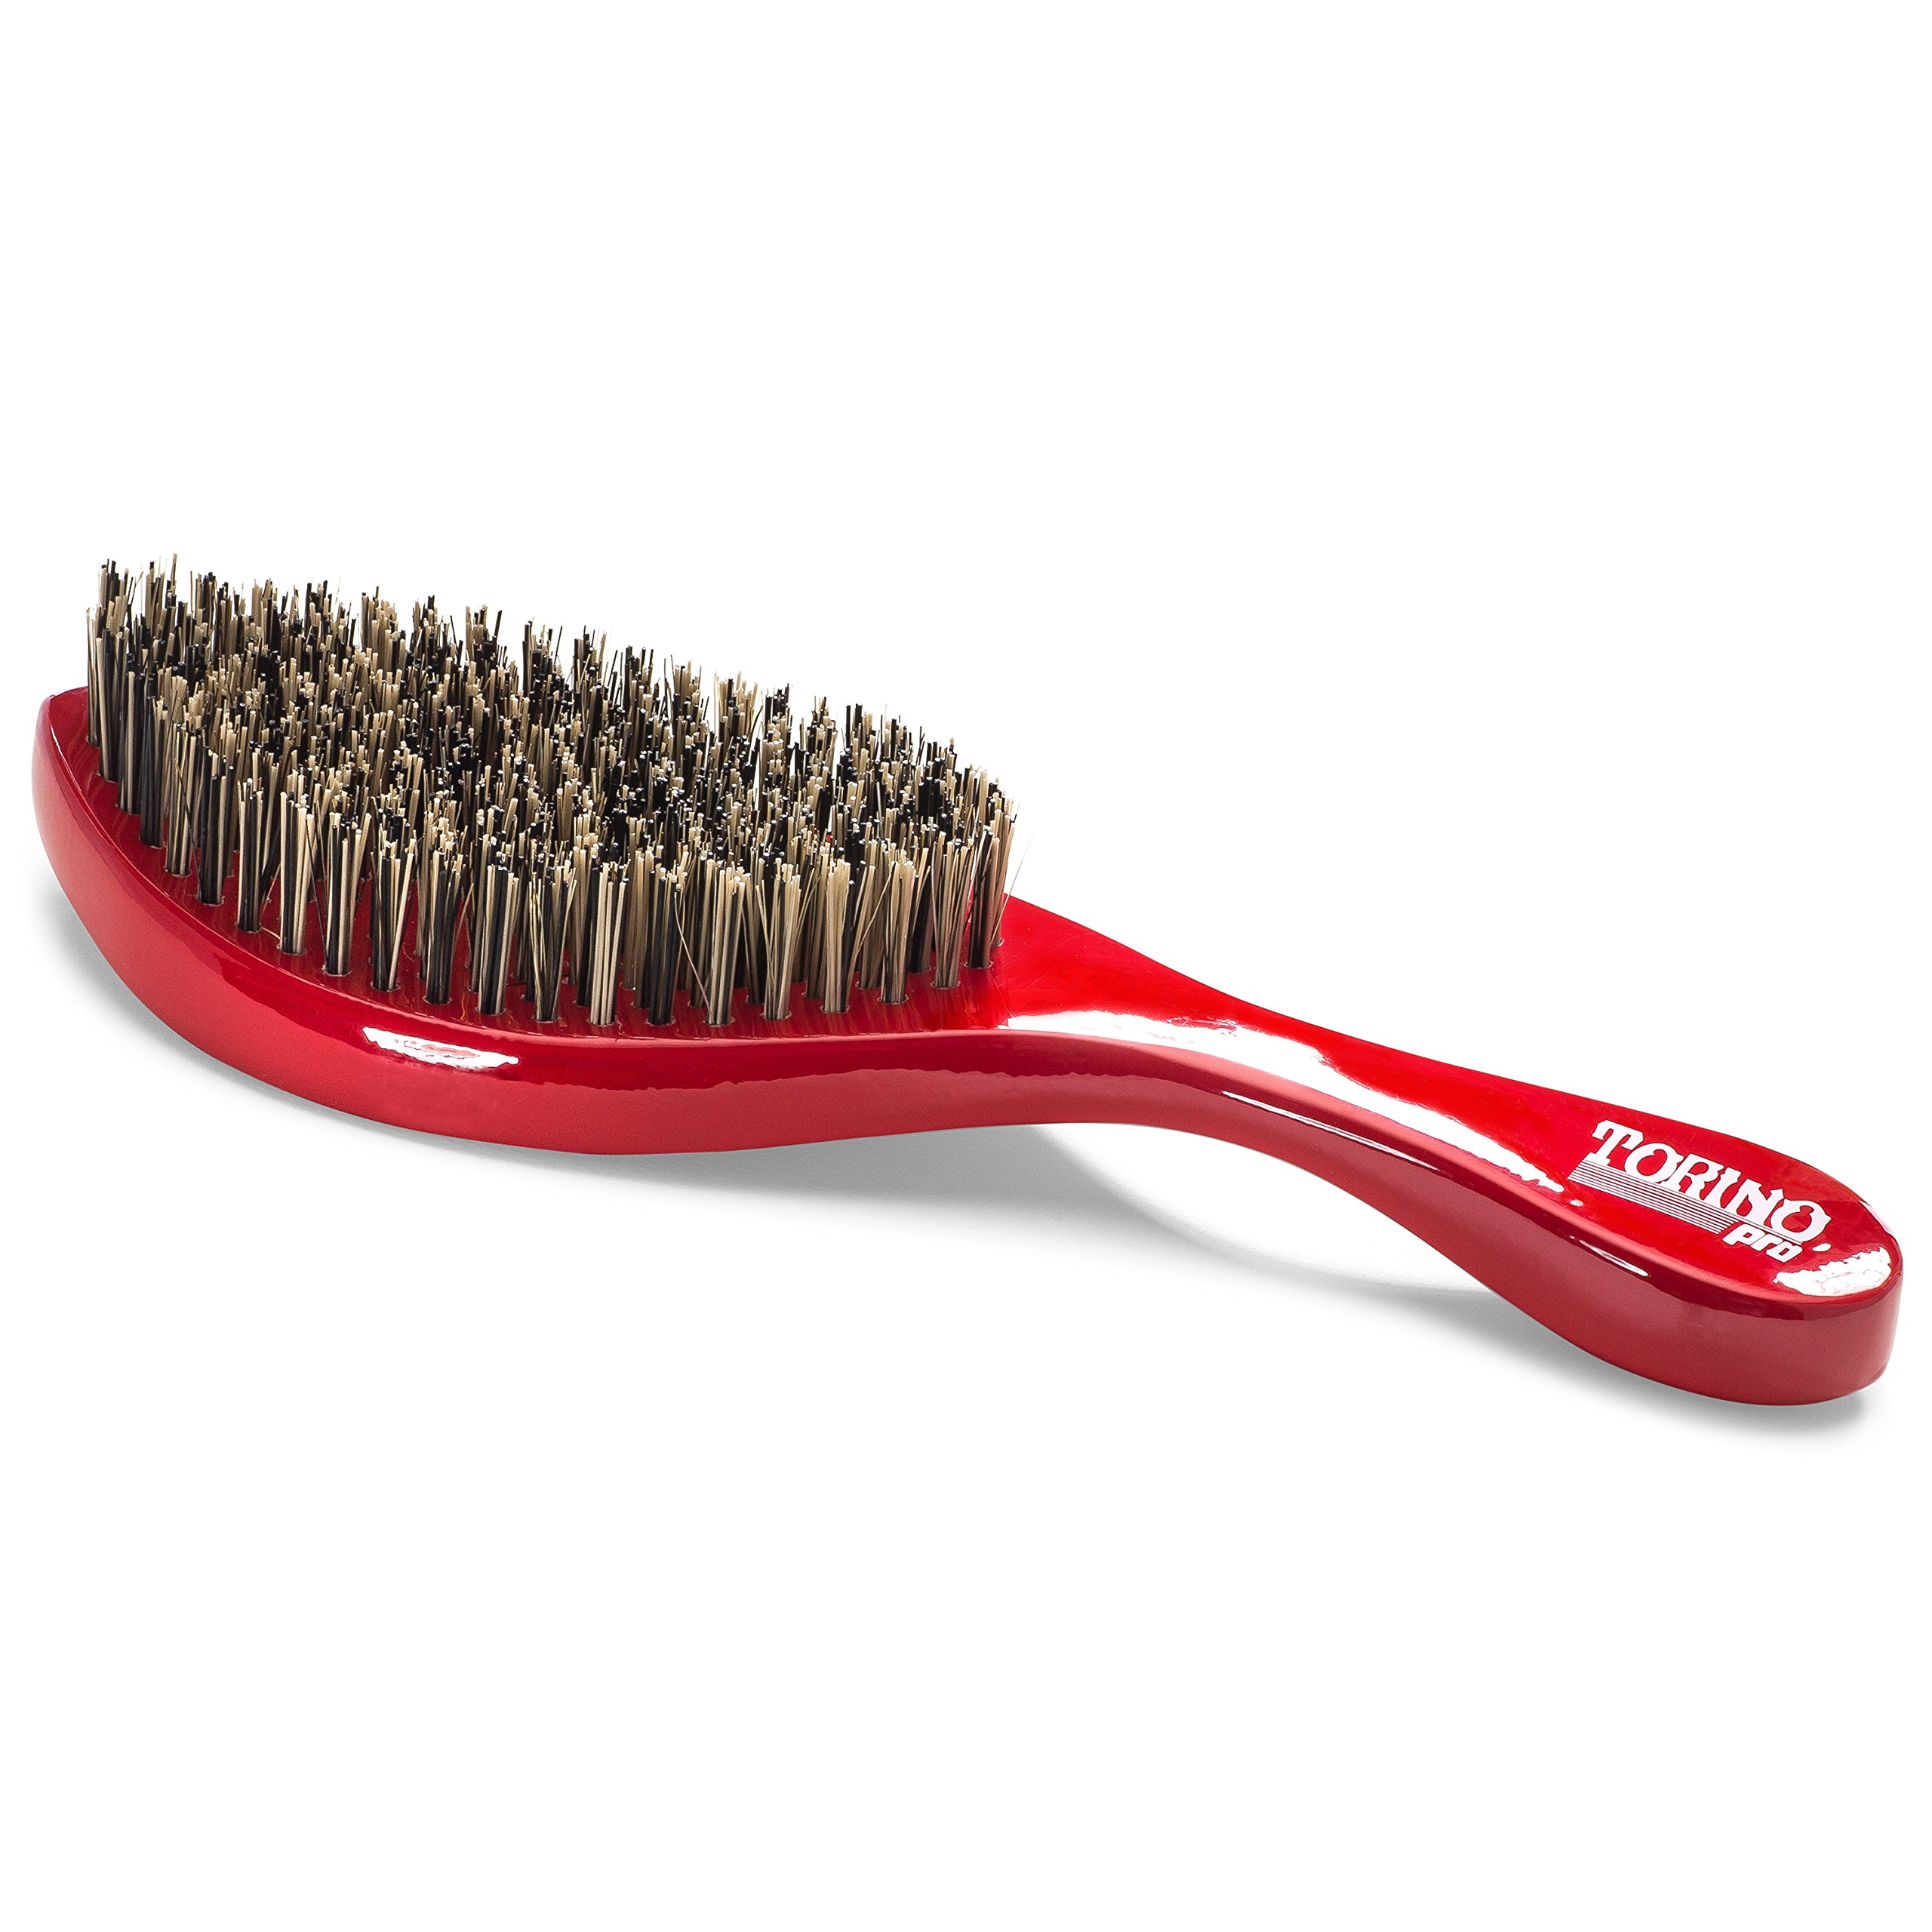 Torino Pro Wave Brush #470 by Brush King - Extra Hard Curve Wave Brush with Reinforced Boar & Nylon Bristles - Great for Wolfing - Curved 360 Waves Brush by Torino Pro (Image #5)